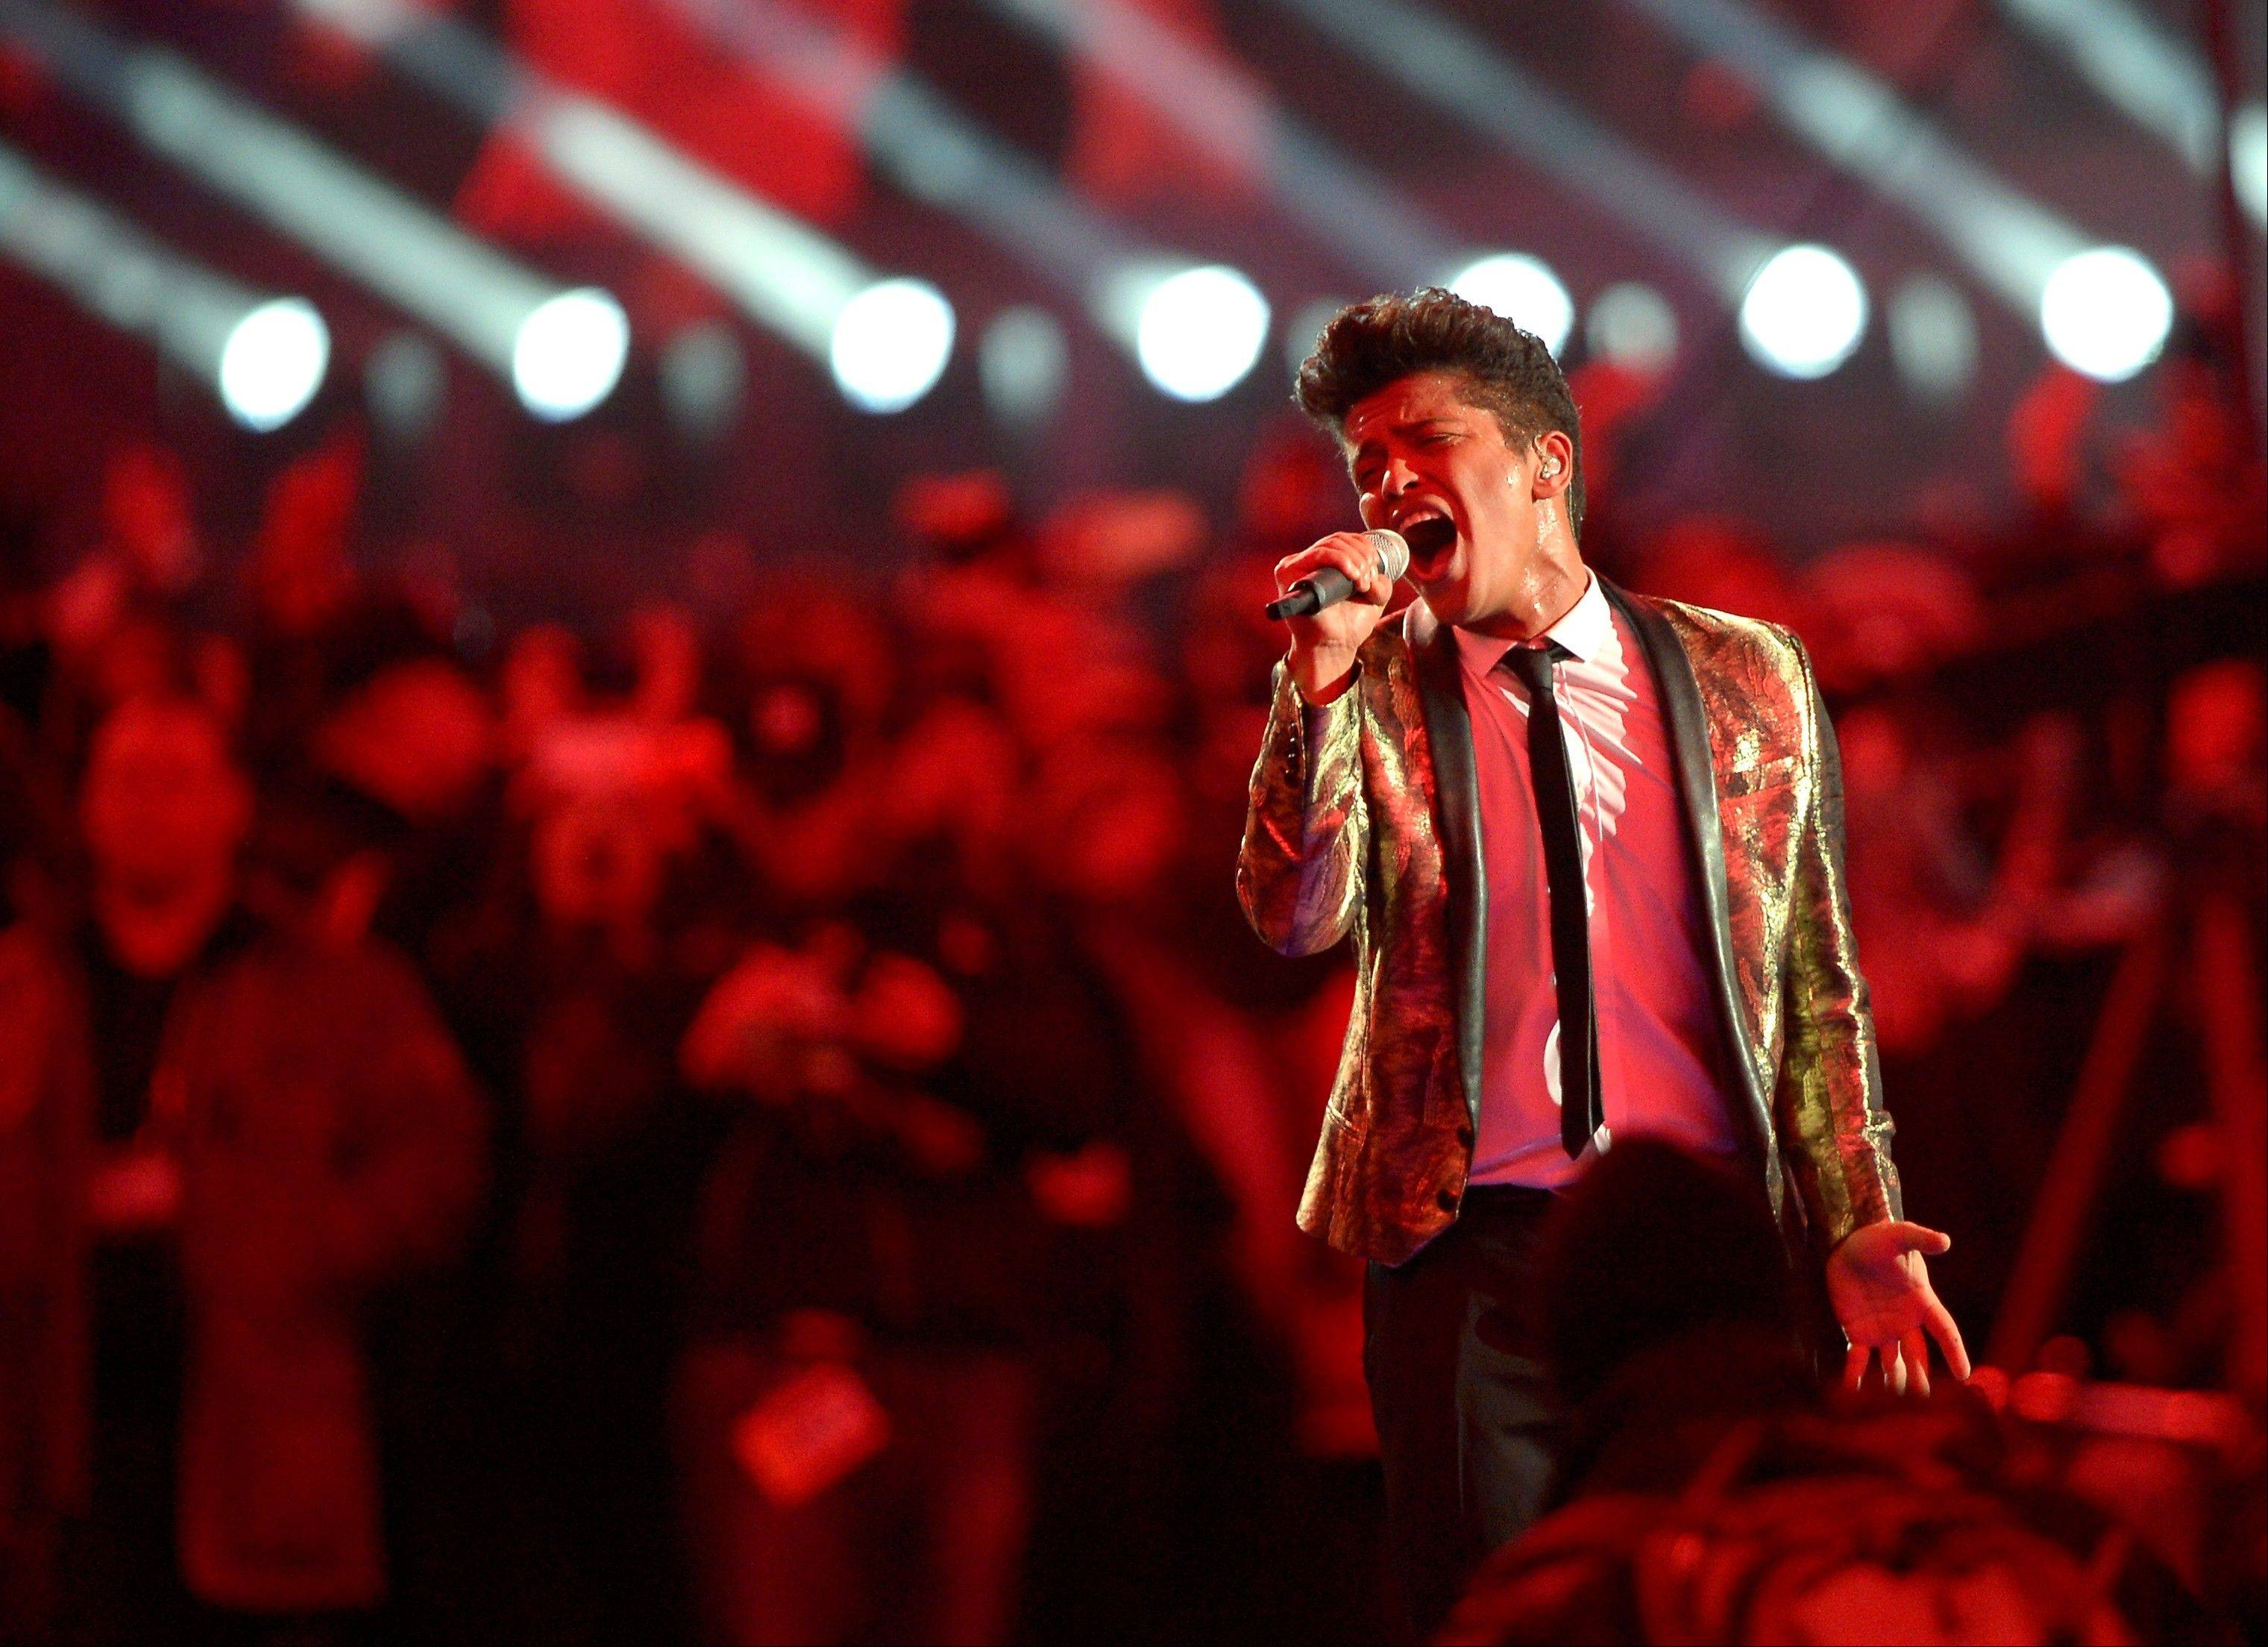 Bruno Mars performs during the halftime show of the NFL Super Bowl XLVIII football game between the Seattle Seahawks and the Denver Broncos Sunday in East Rutherford, N.J.